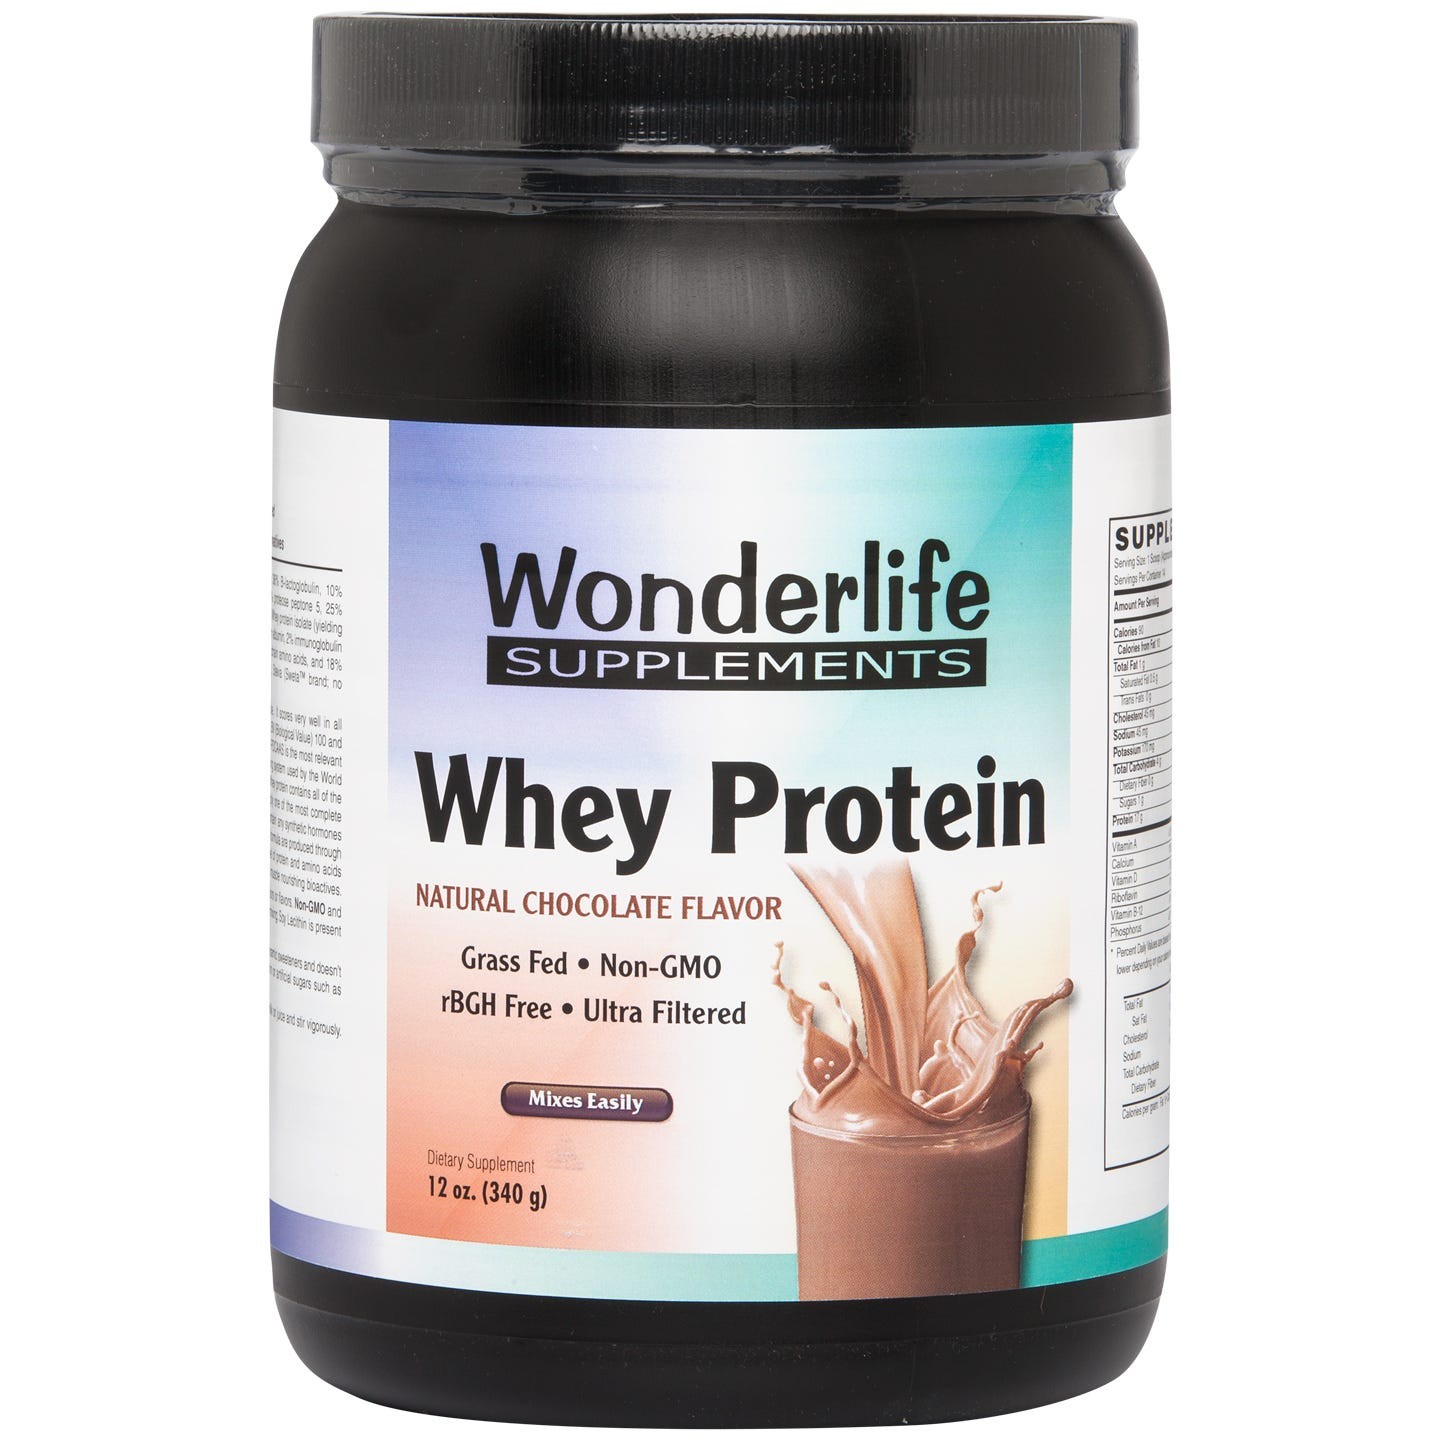 Whey Protein Micro-Filtered & Hydrolyzed Chocolate 12 oz, Wonderlife - Rapid Diet Weight Loss Products Shop